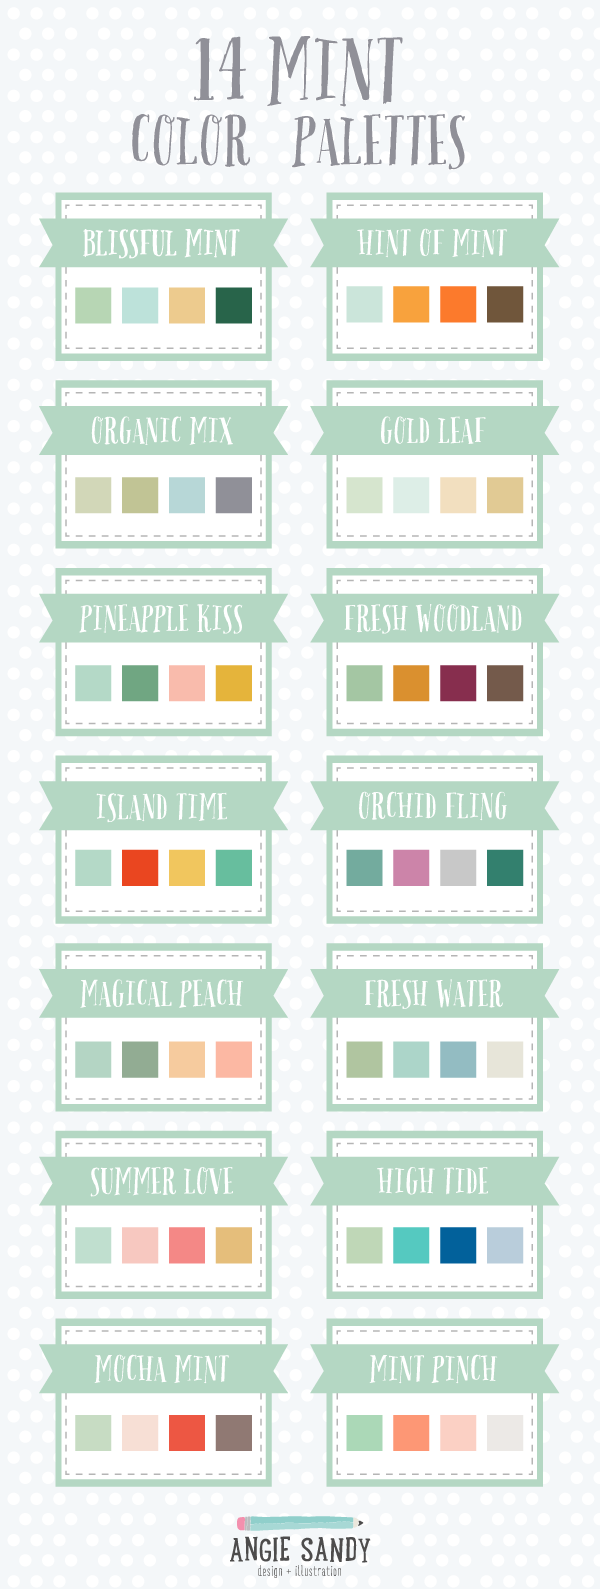 14 Mint Color Palettes Angie Sandy Art Licensing Design Angiesandy Colorpalette